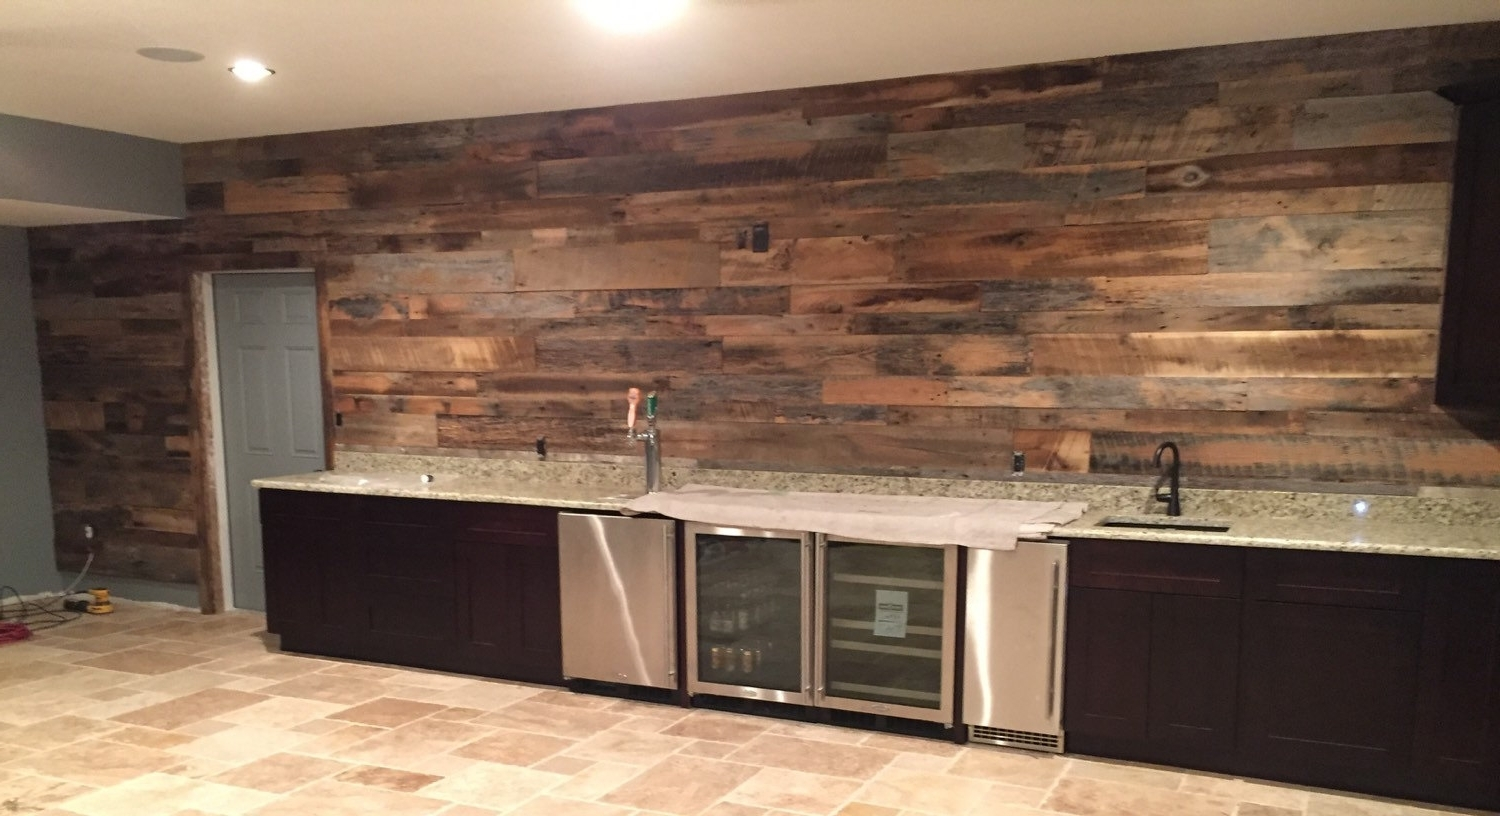 Reclaimed Wood Accent Wall — Cookwithalocal Home And Space Decor With Most Up To Date Reclaimed Wood Wall Accents (View 7 of 15)